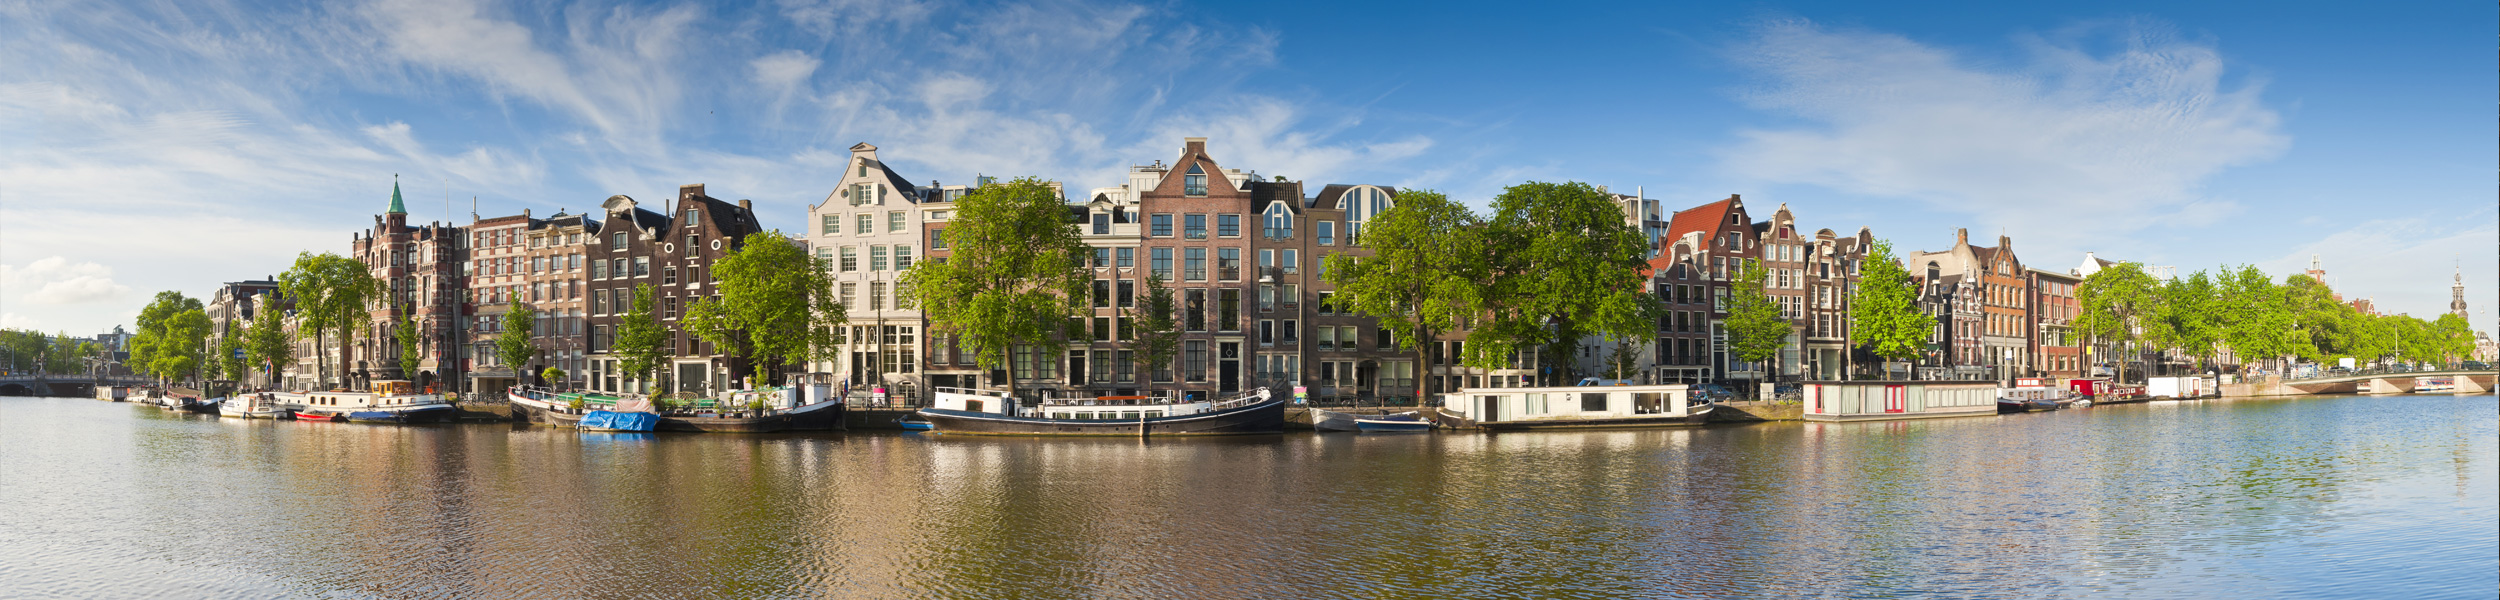 .NET Senior Software Engineer Amsterdam, The Netherlands